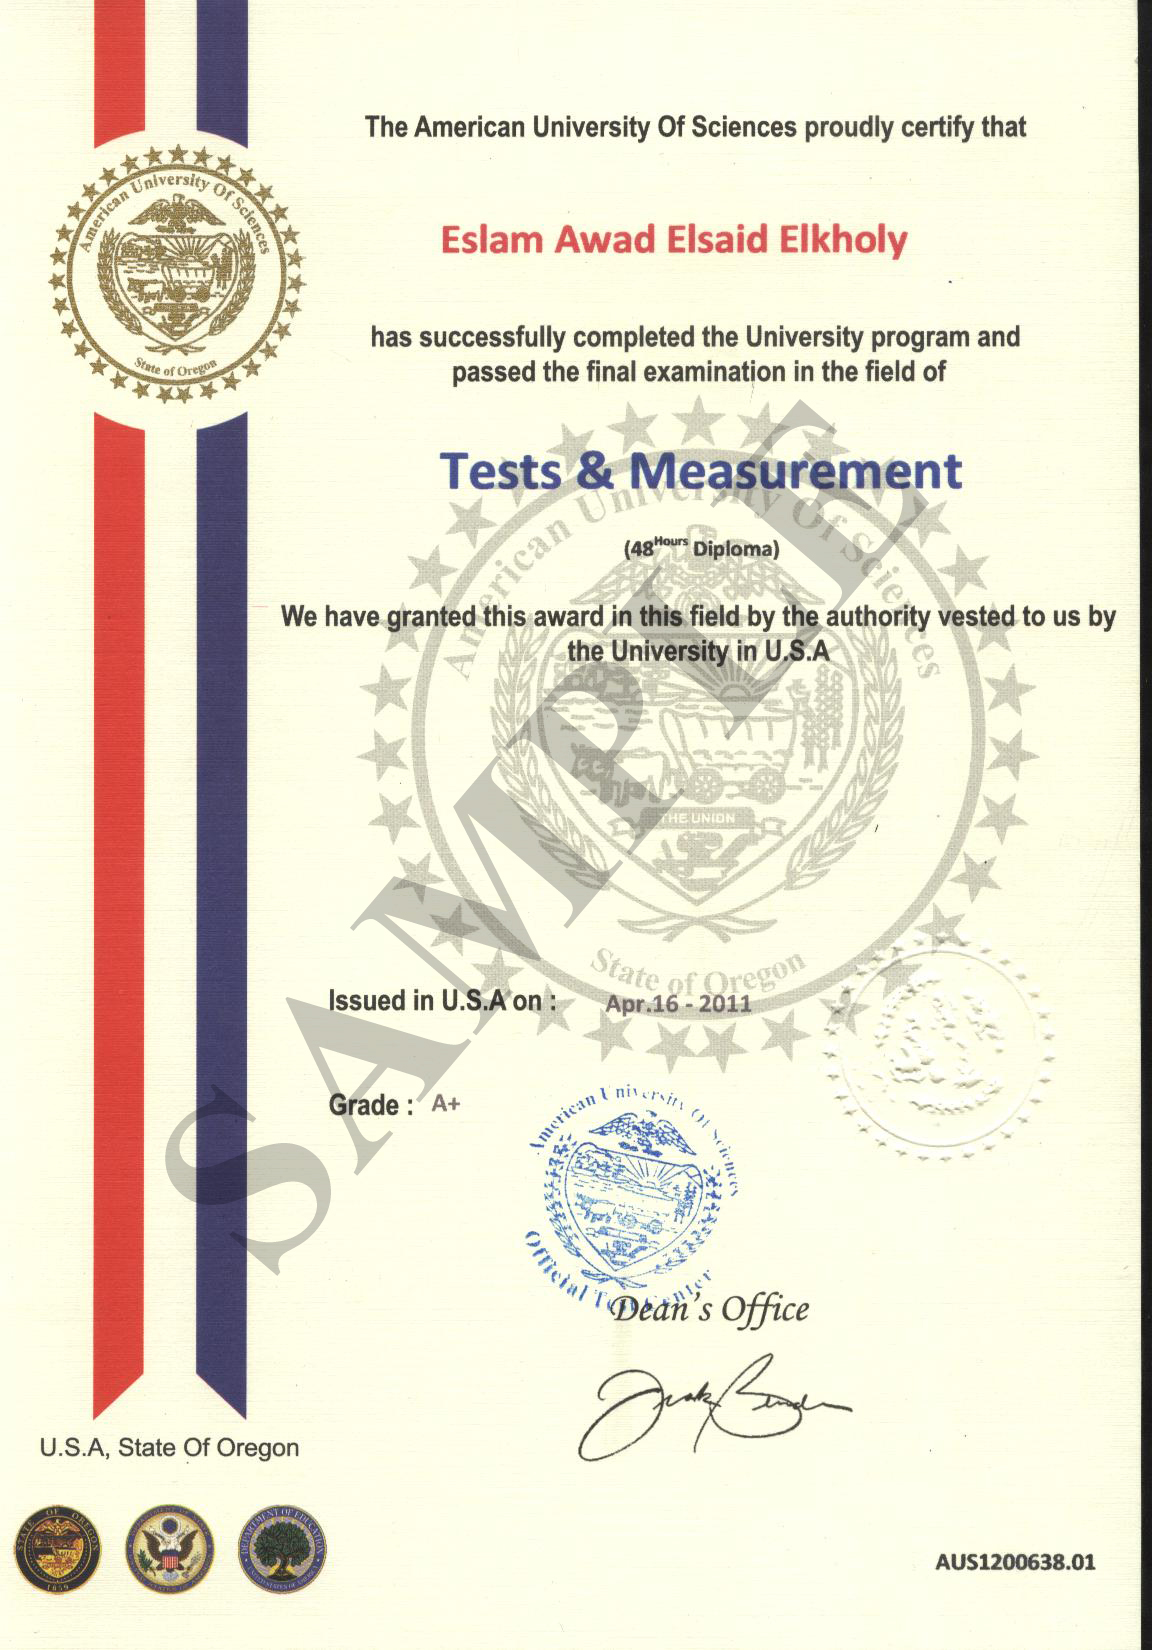 American university of sciences official certificate yelopaper Images